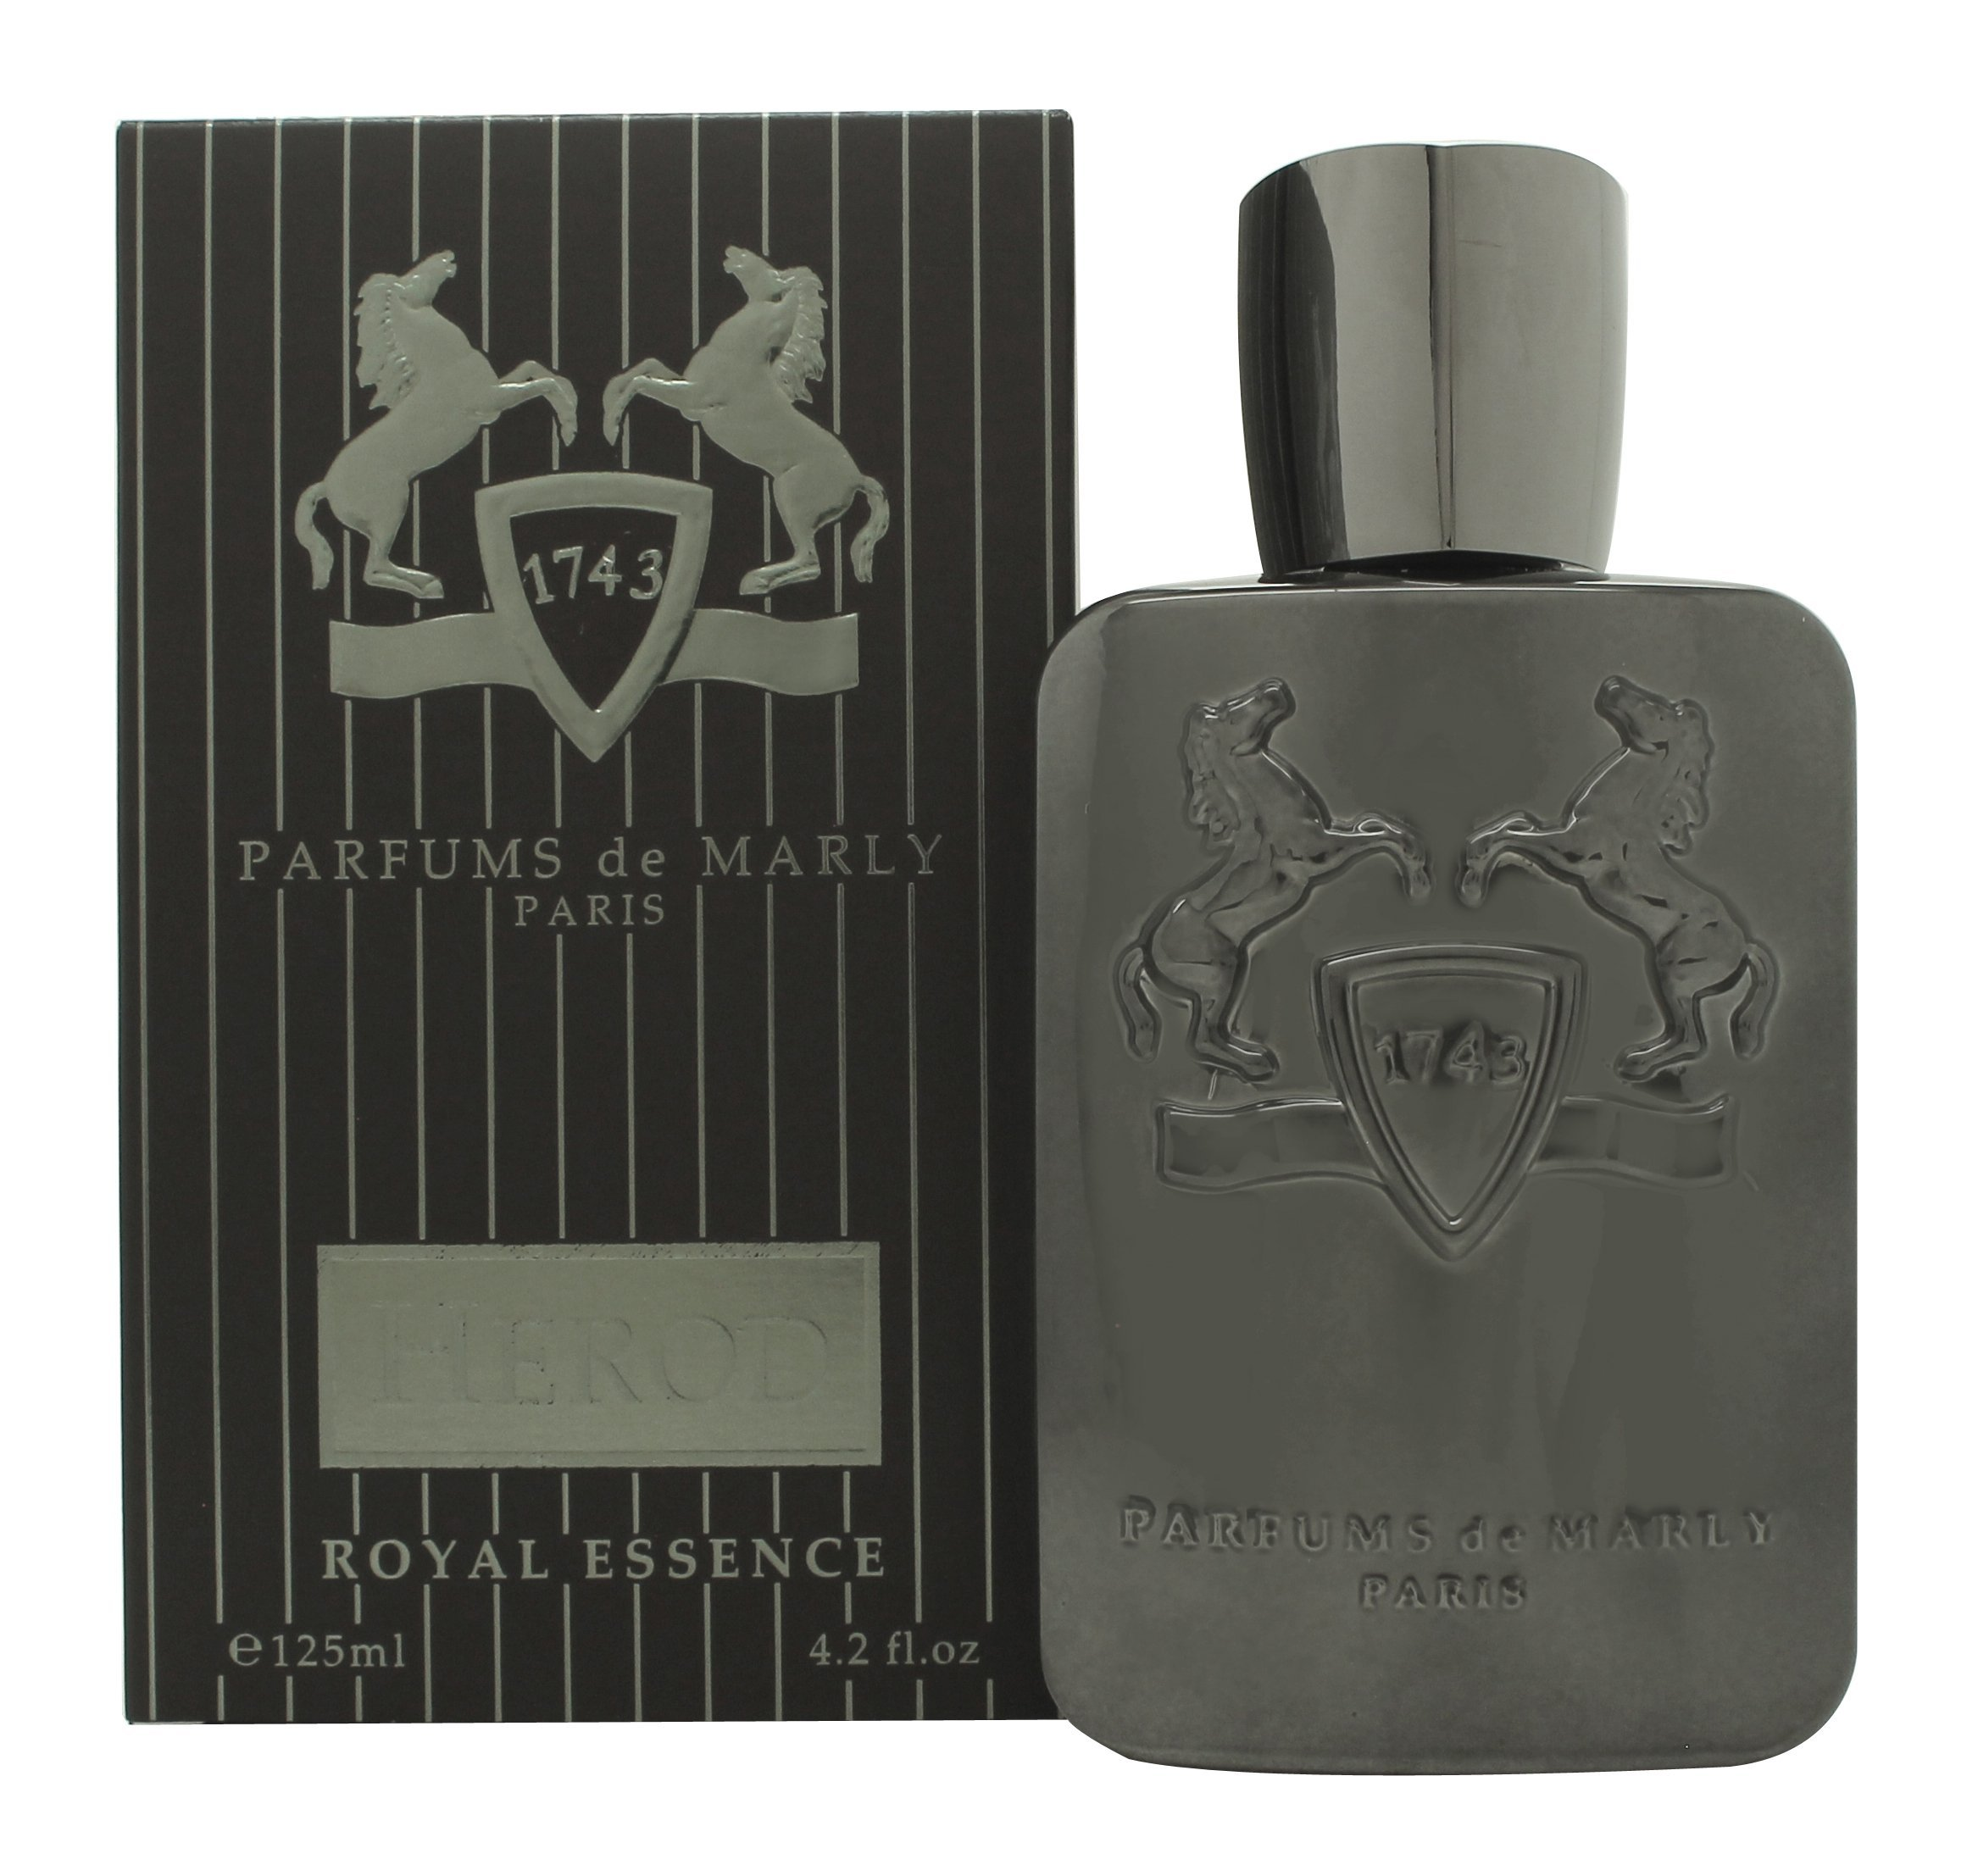 Parfums de Marly Herod Men's EDP Spray, 4.2 oz. by Parfums de Marly